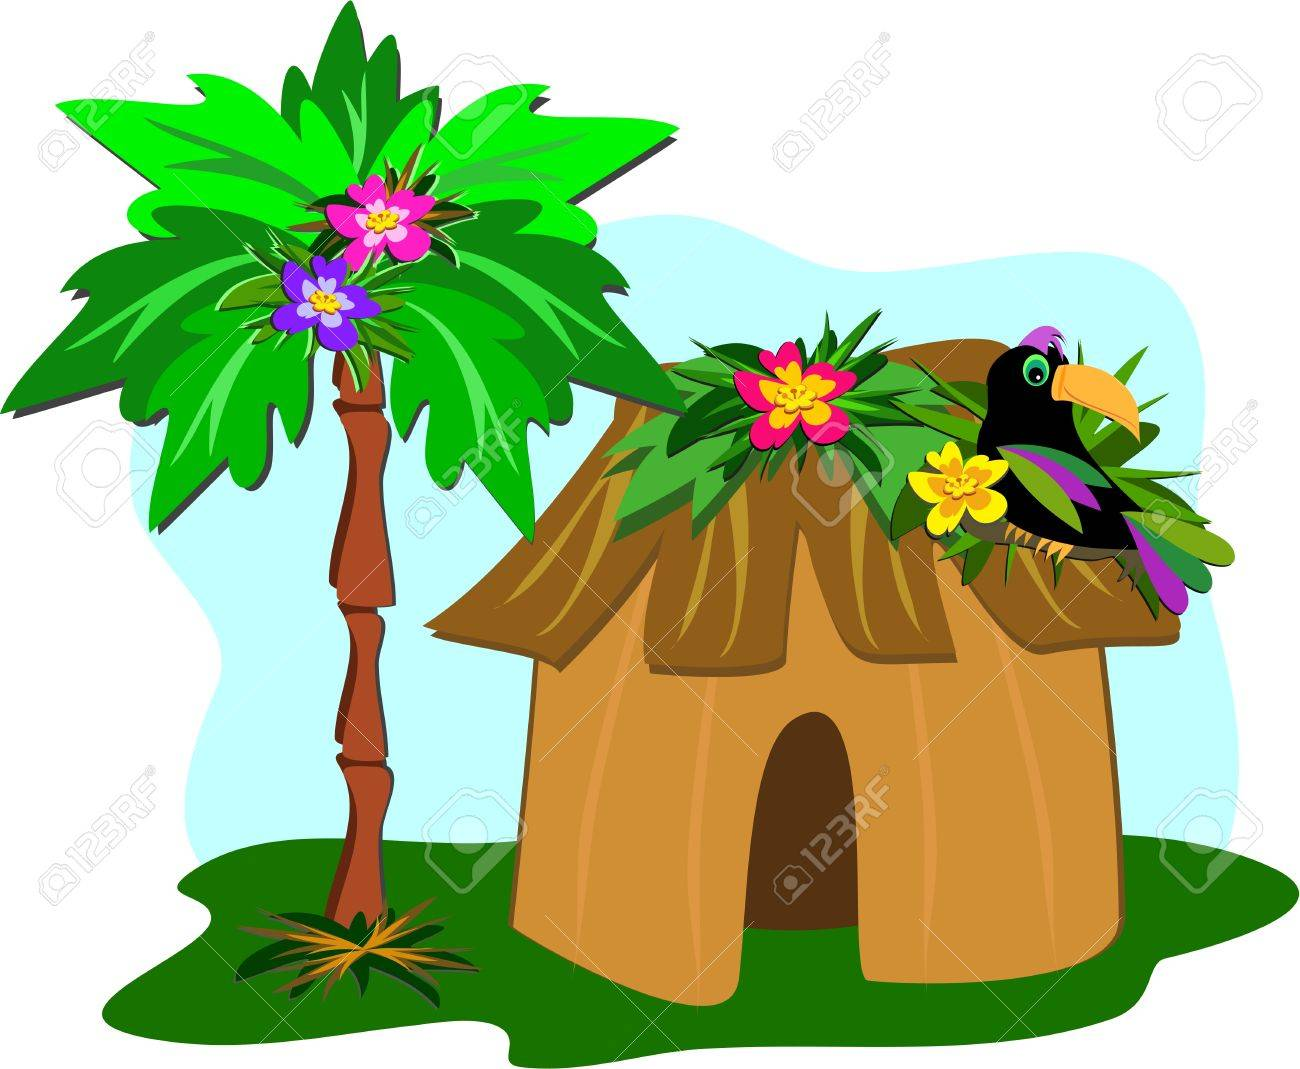 Tropical Hut, Palm Tree, and Toucan Stock Vector - 8987445